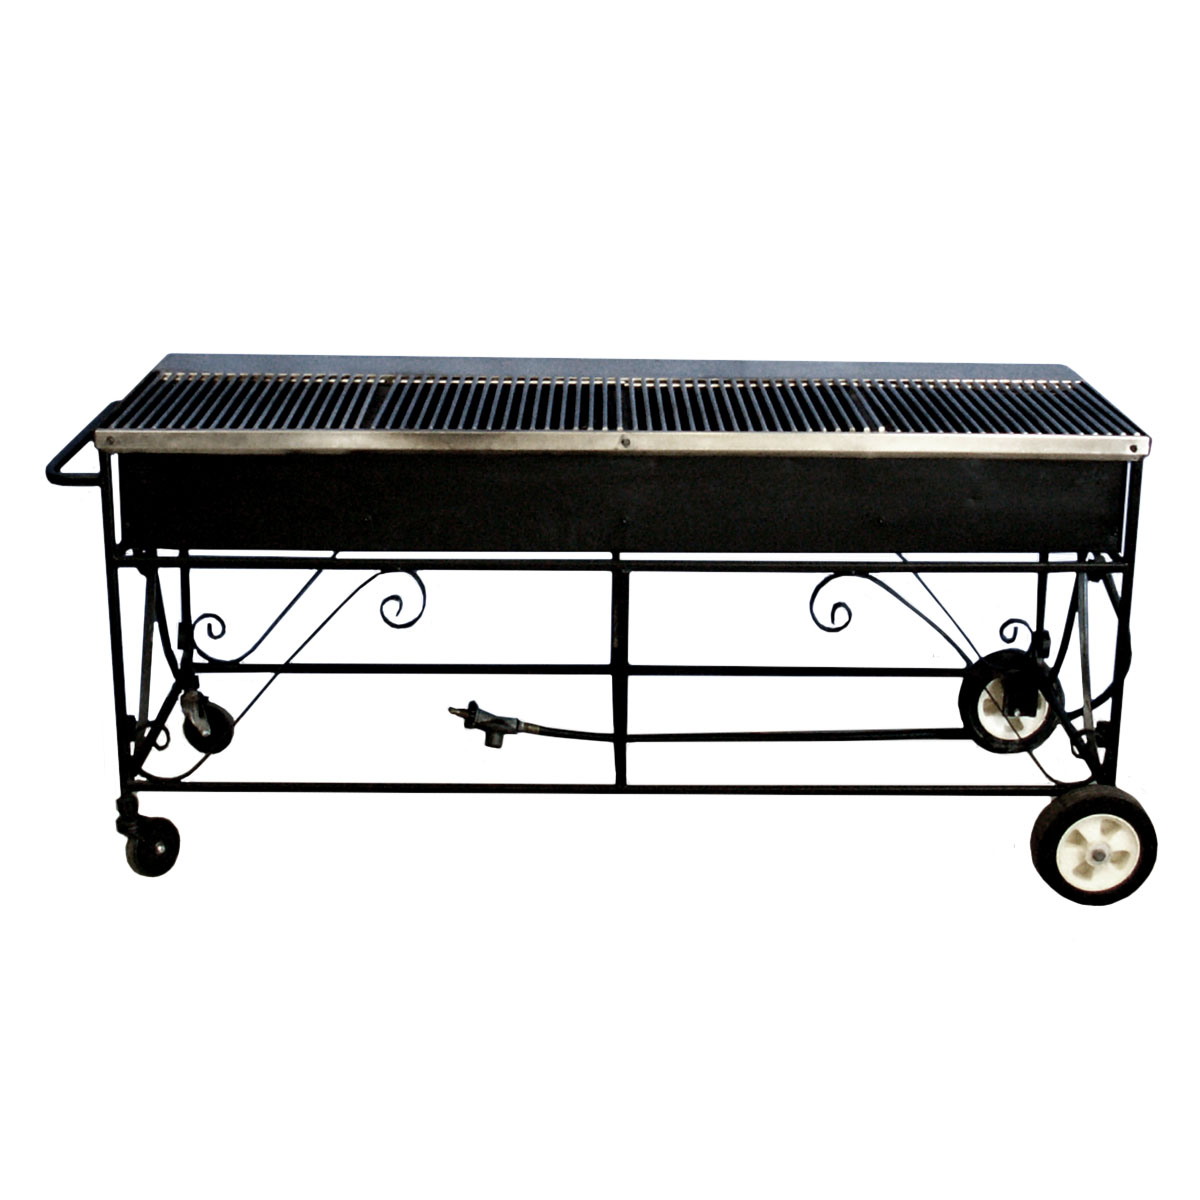 Grills, Griddles & Cookers